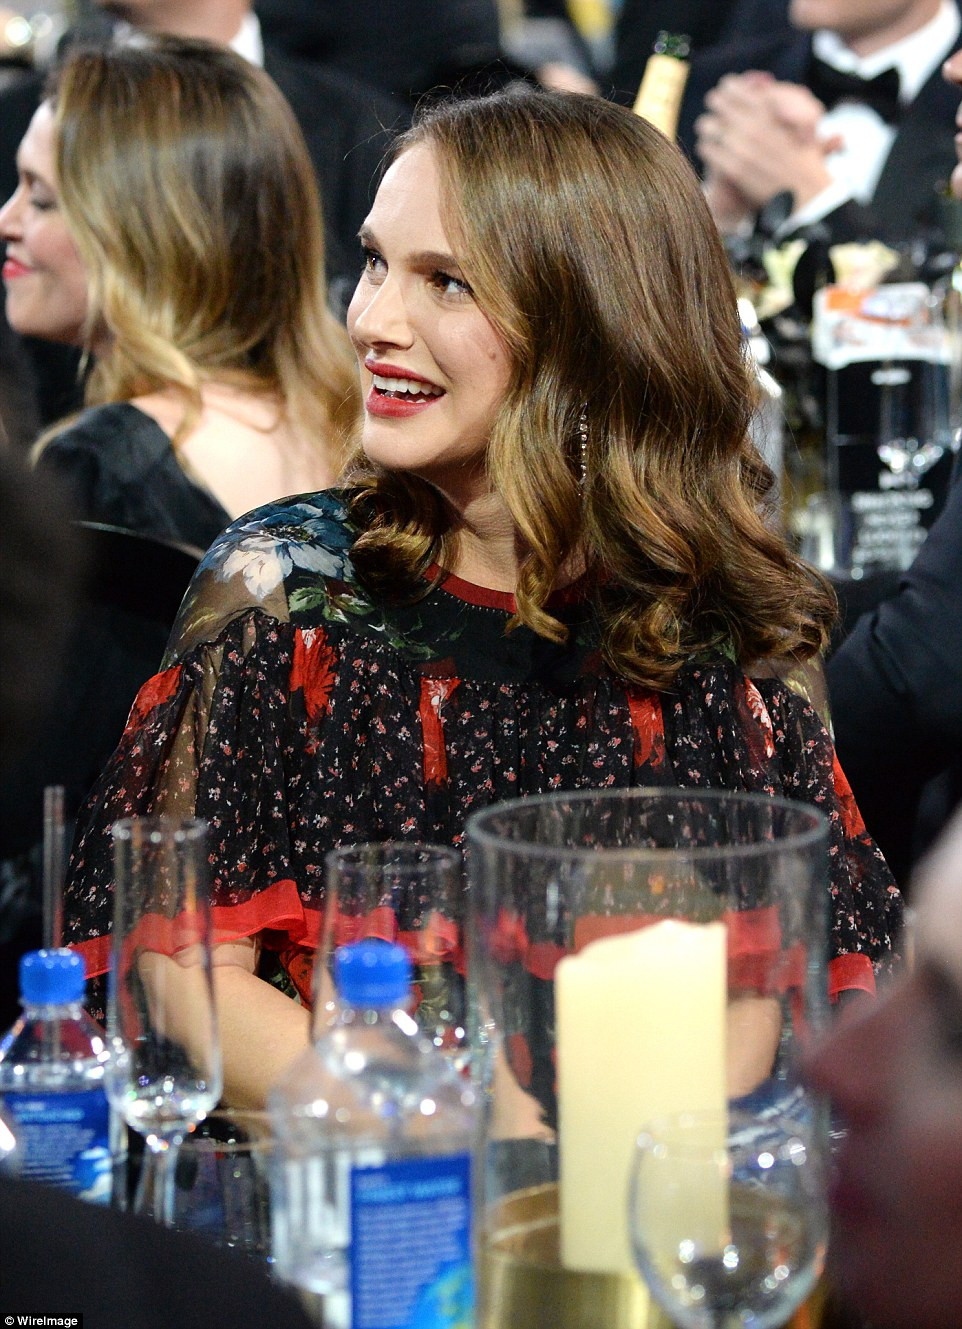 Having a blast: Natalie Portman portrayed the former Fist Lady in the film Jackie as she had a laugh during the gag